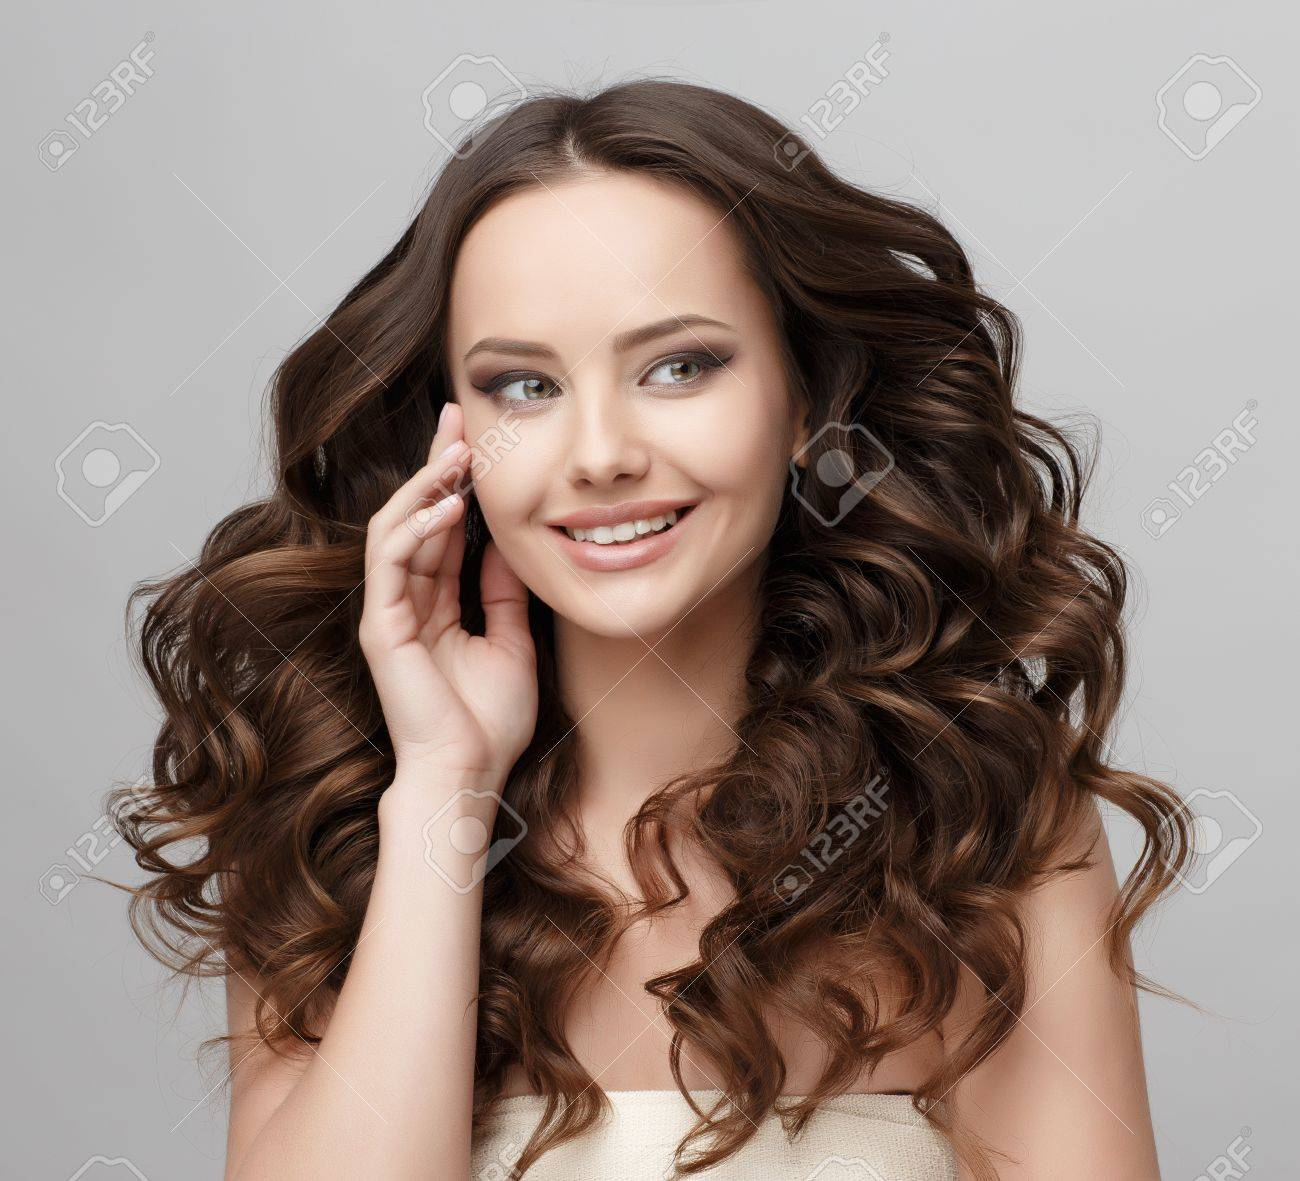 Beautiful Face of Young Woman with Clean Fresh Skin close up isolated on white. Beauty Portrait. Beautiful Spa Woman Smiling. Perfect Fresh Skin. Pure Beauty Model. Youth and Skin Care Concept - 64452027